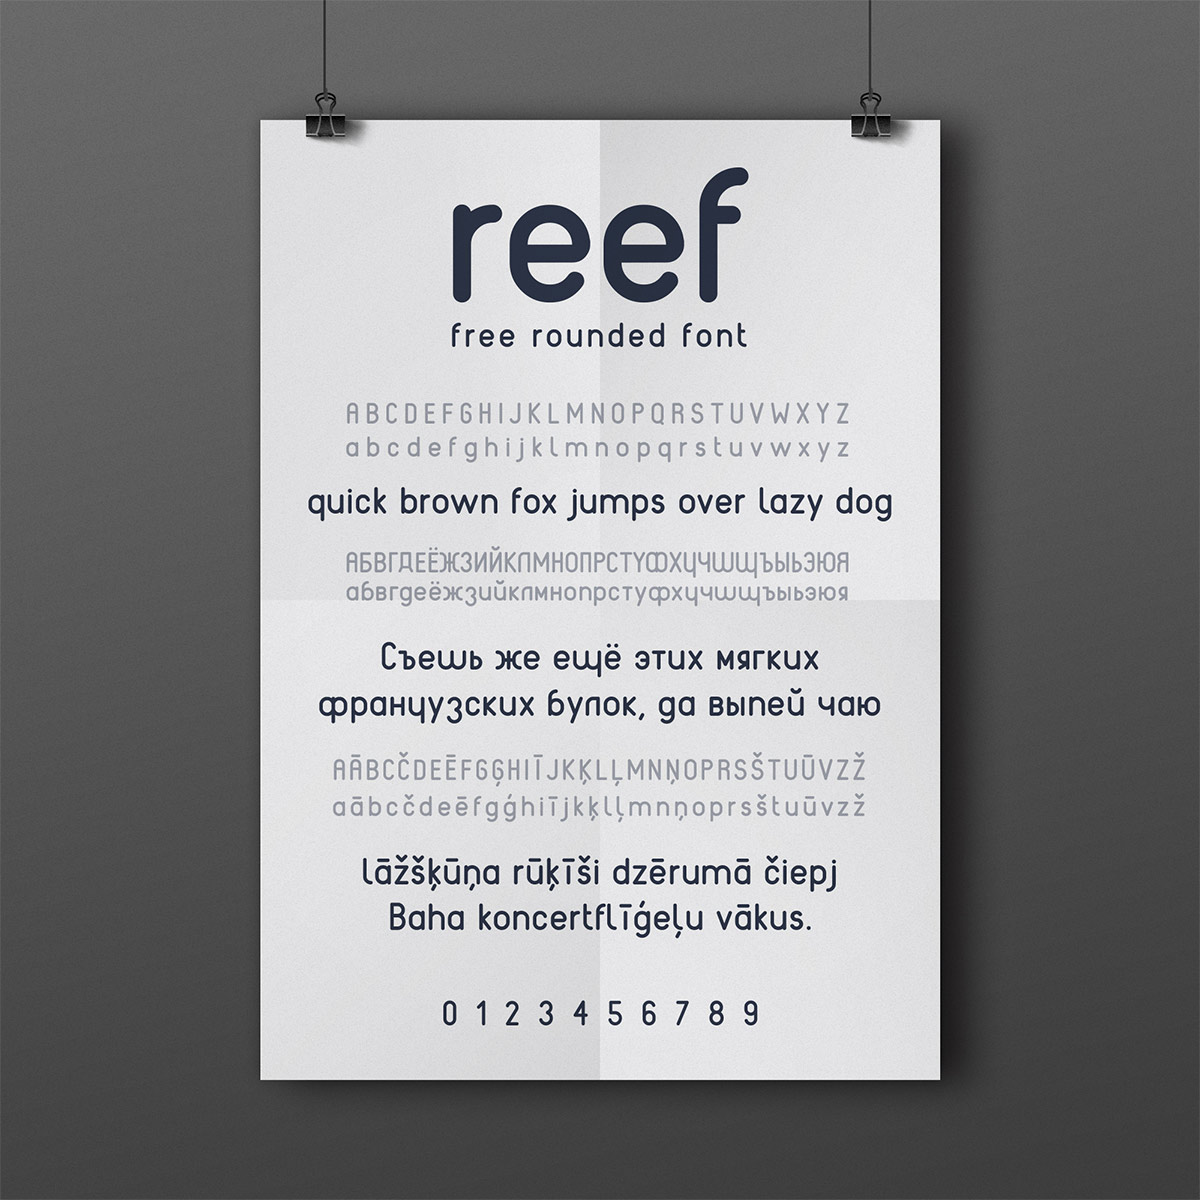 font free download reef Typeface rounded design graphic poster Cyrillic russian latvian latin extended